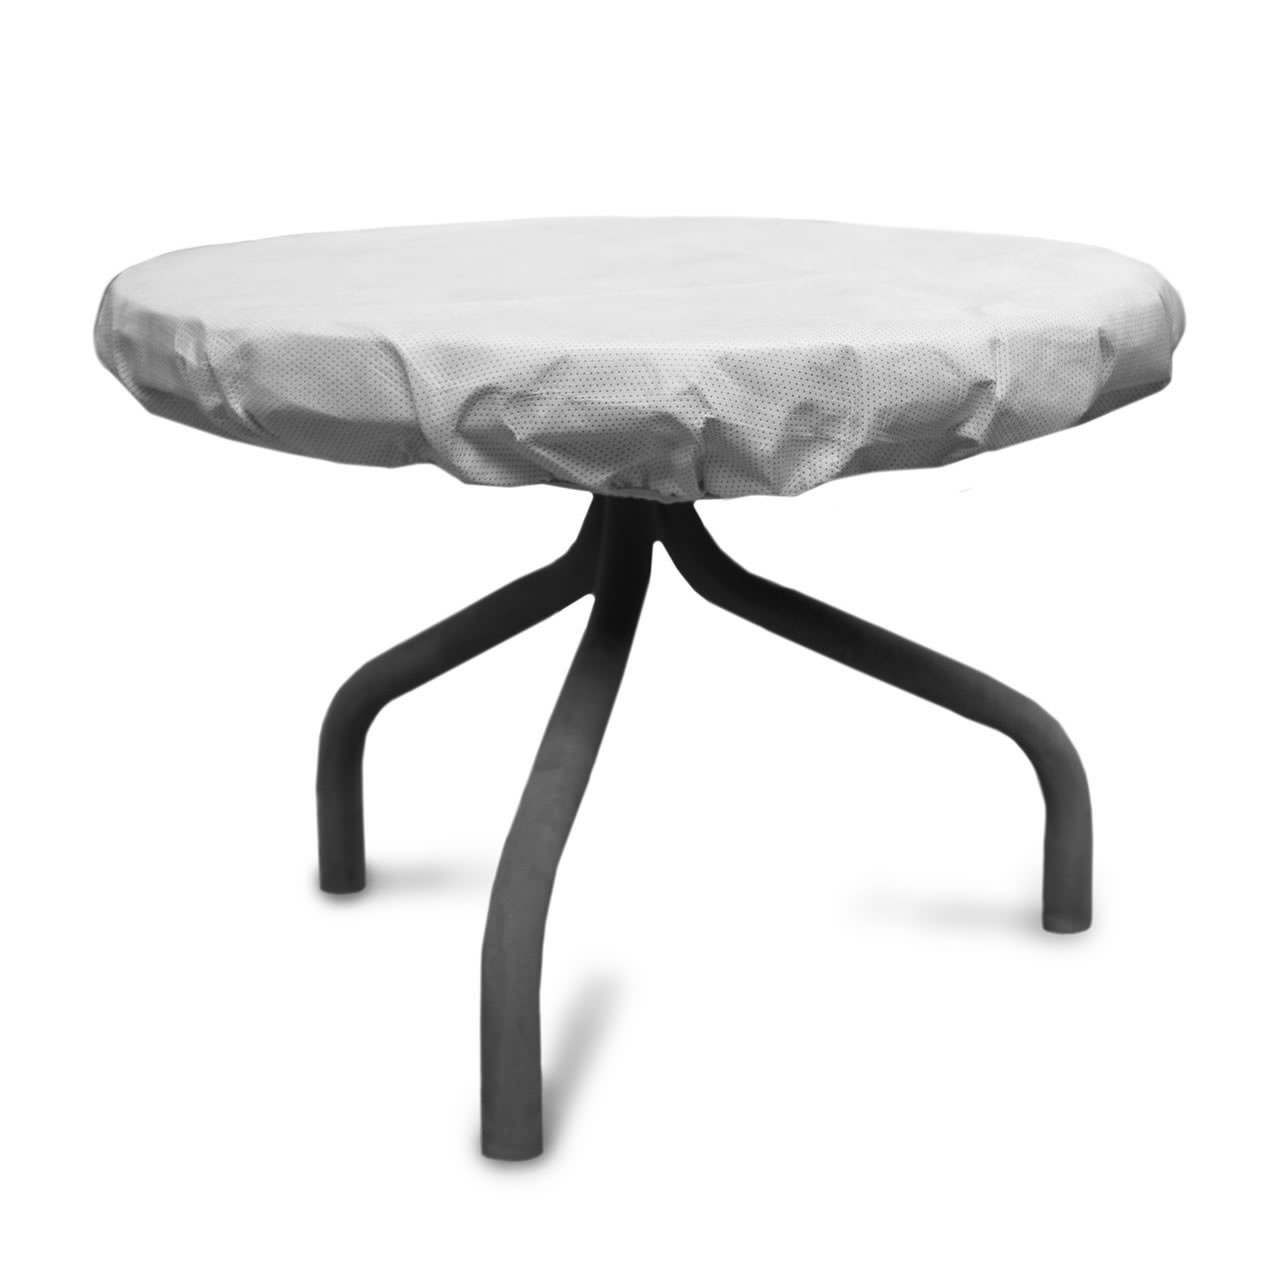 KoverRoos SupraRoos Round Table Top Cover